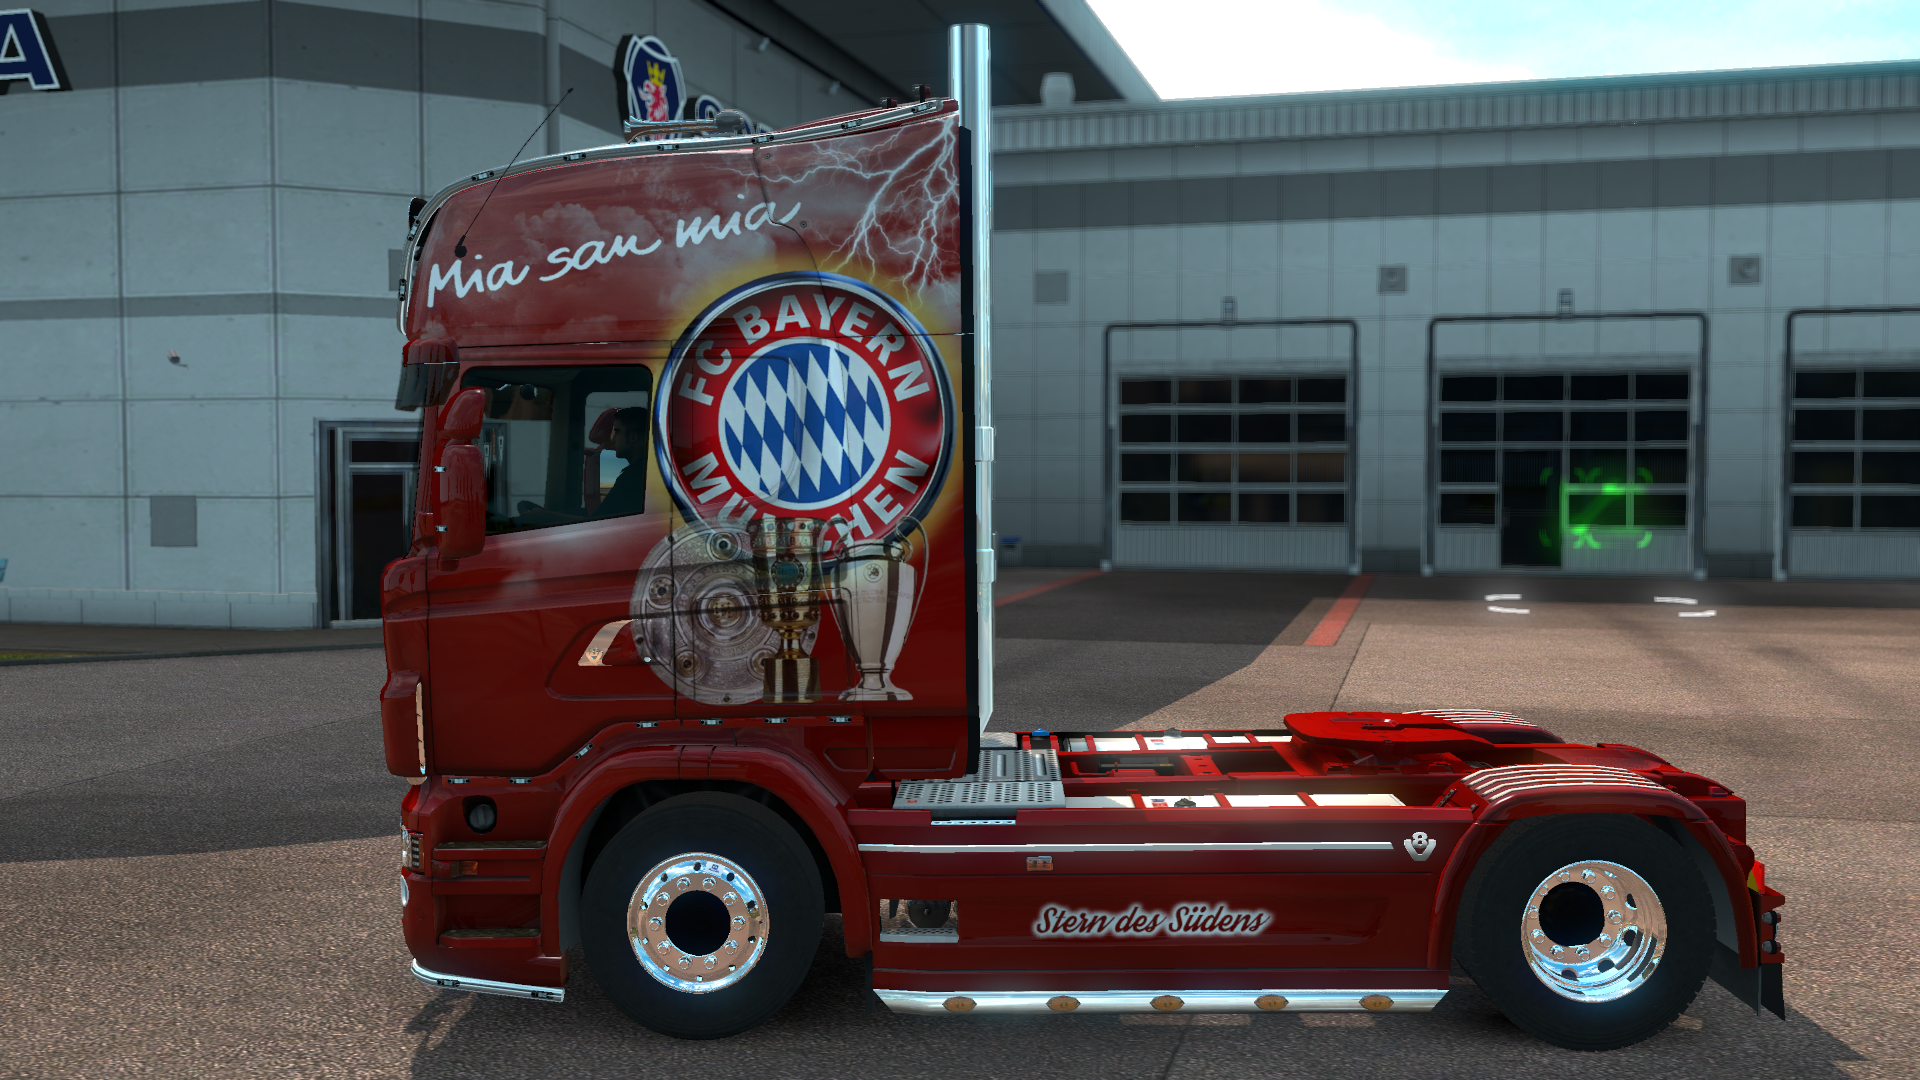 Skins by Capelle - Seite 2 Ets2_00149ubk6x